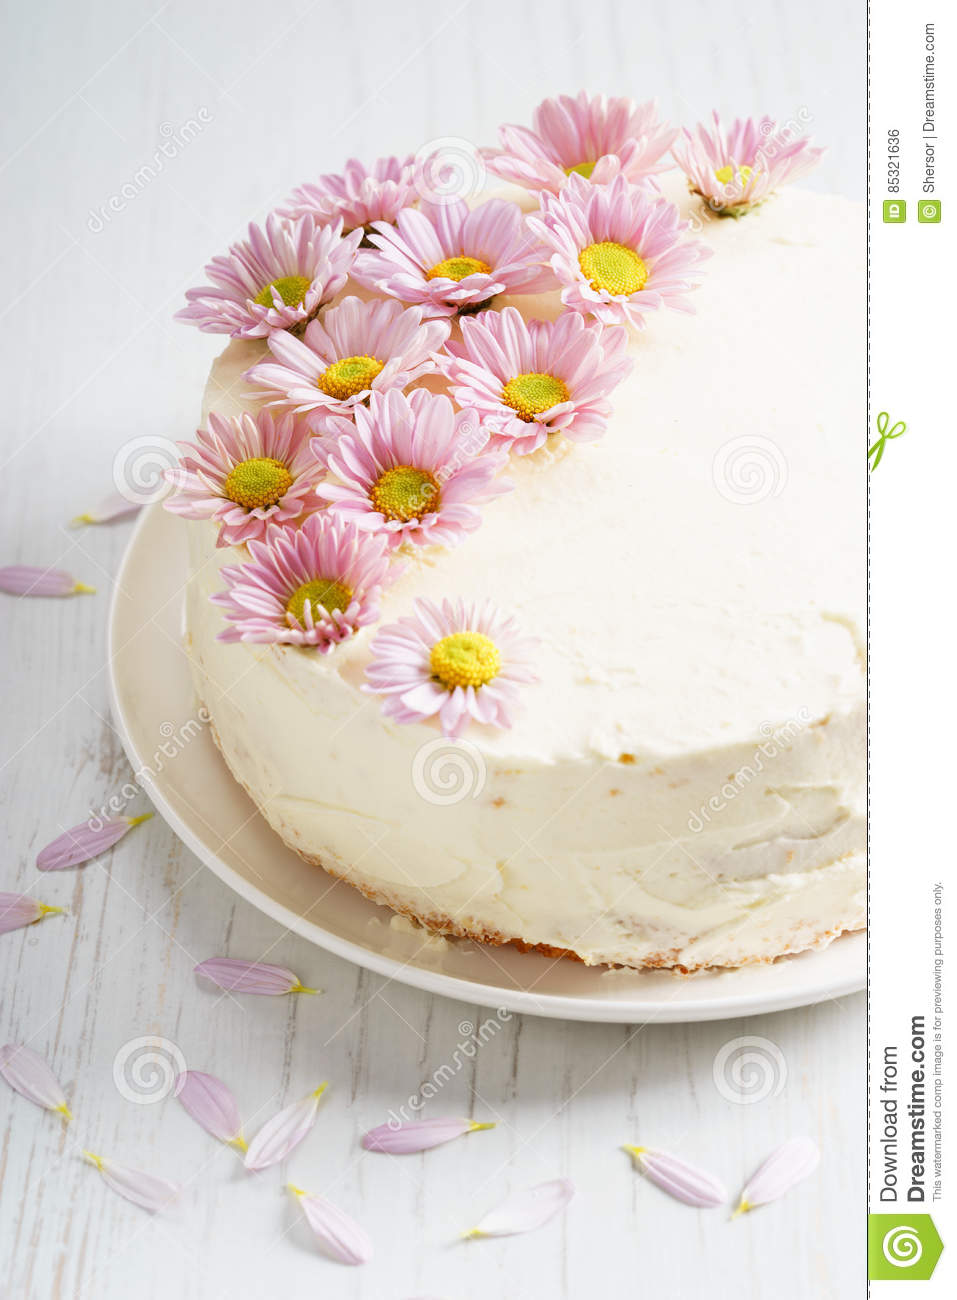 Sweet white buttercream cake with pink flowers on top stock photo download sweet white buttercream cake with pink flowers on top stock photo image of cake mightylinksfo